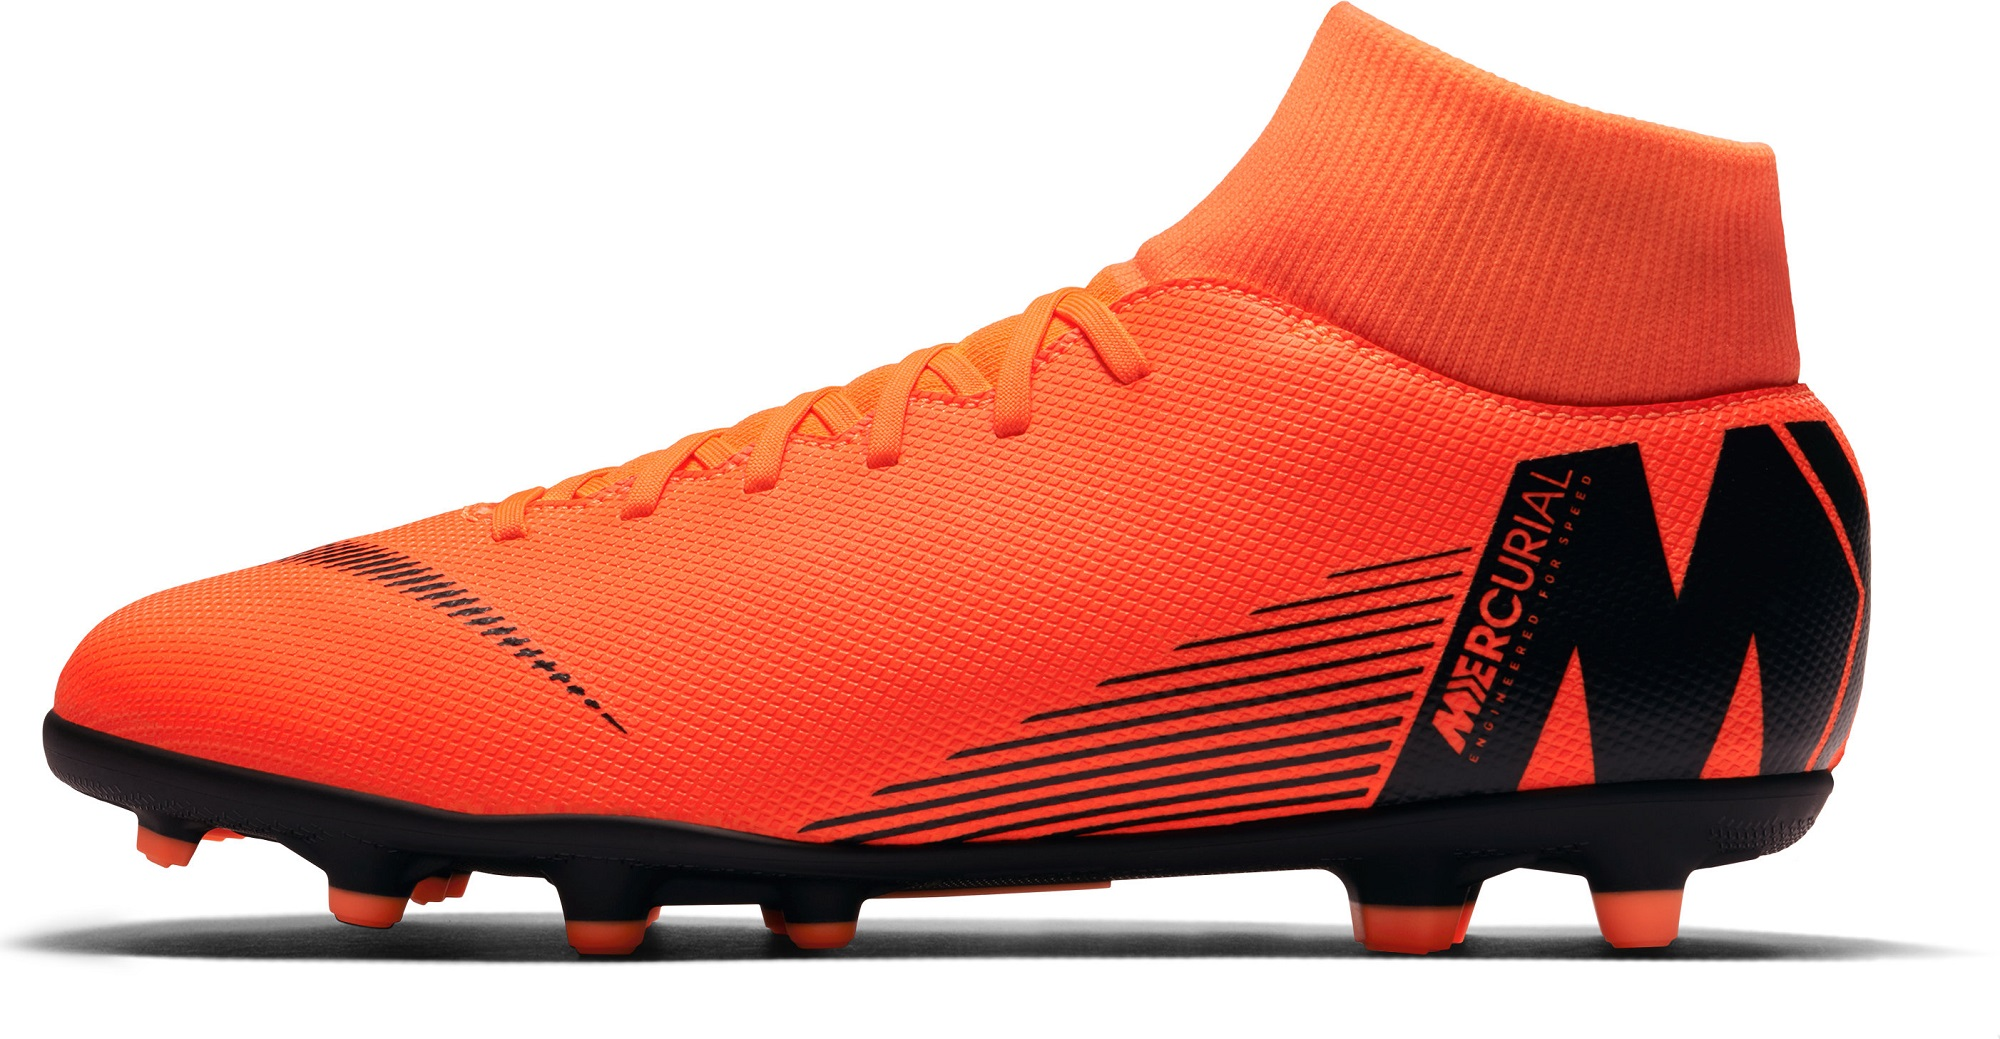 Nike Бутсы мужские Nike Superfly 6 Club MG бутсы nike superfly academy gs cr7 jr fg mg aj3111 390